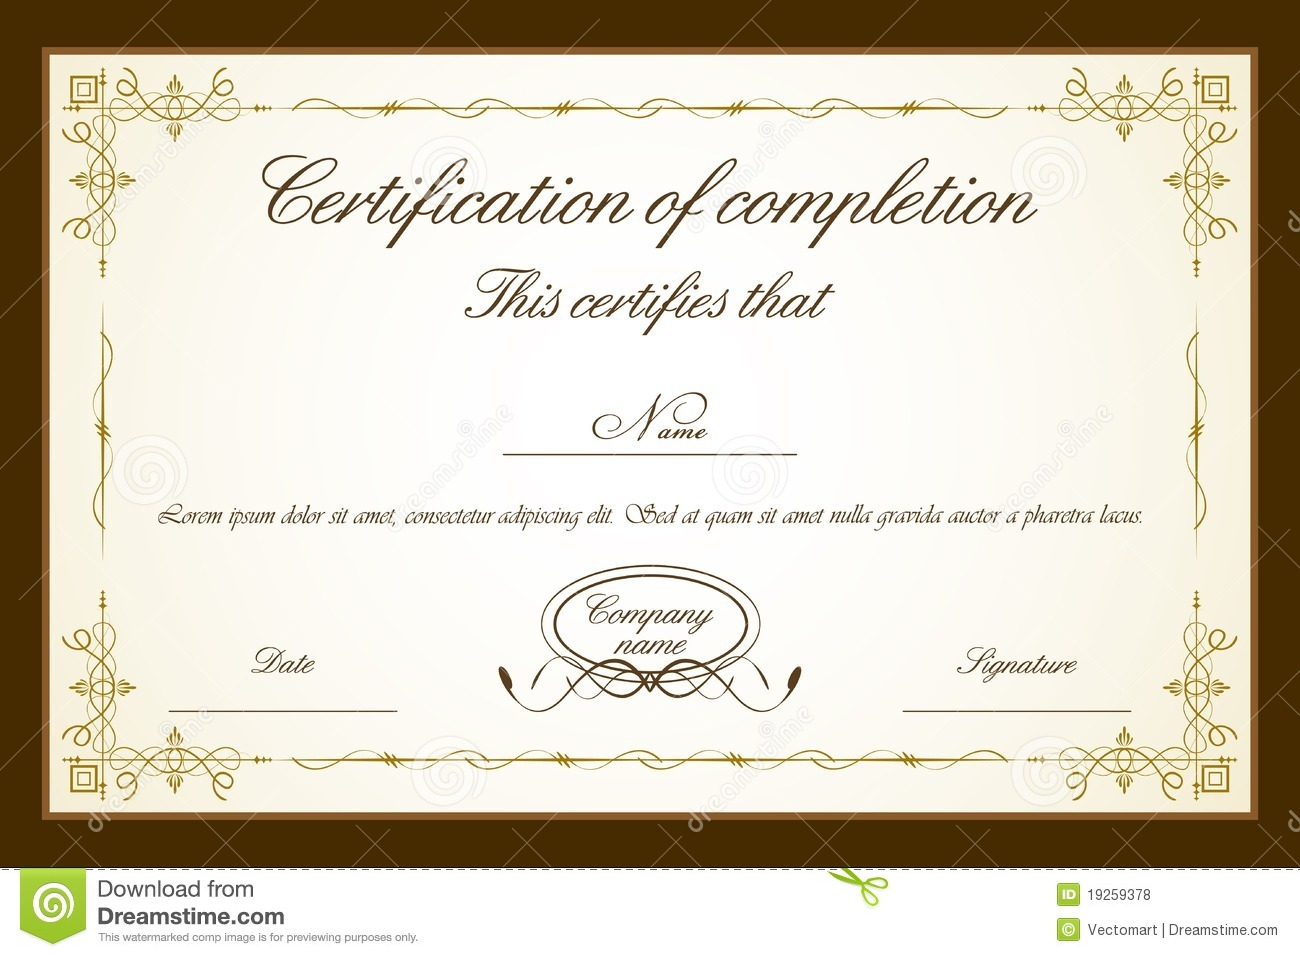 Download free certificates insrenterprises yelopaper Gallery